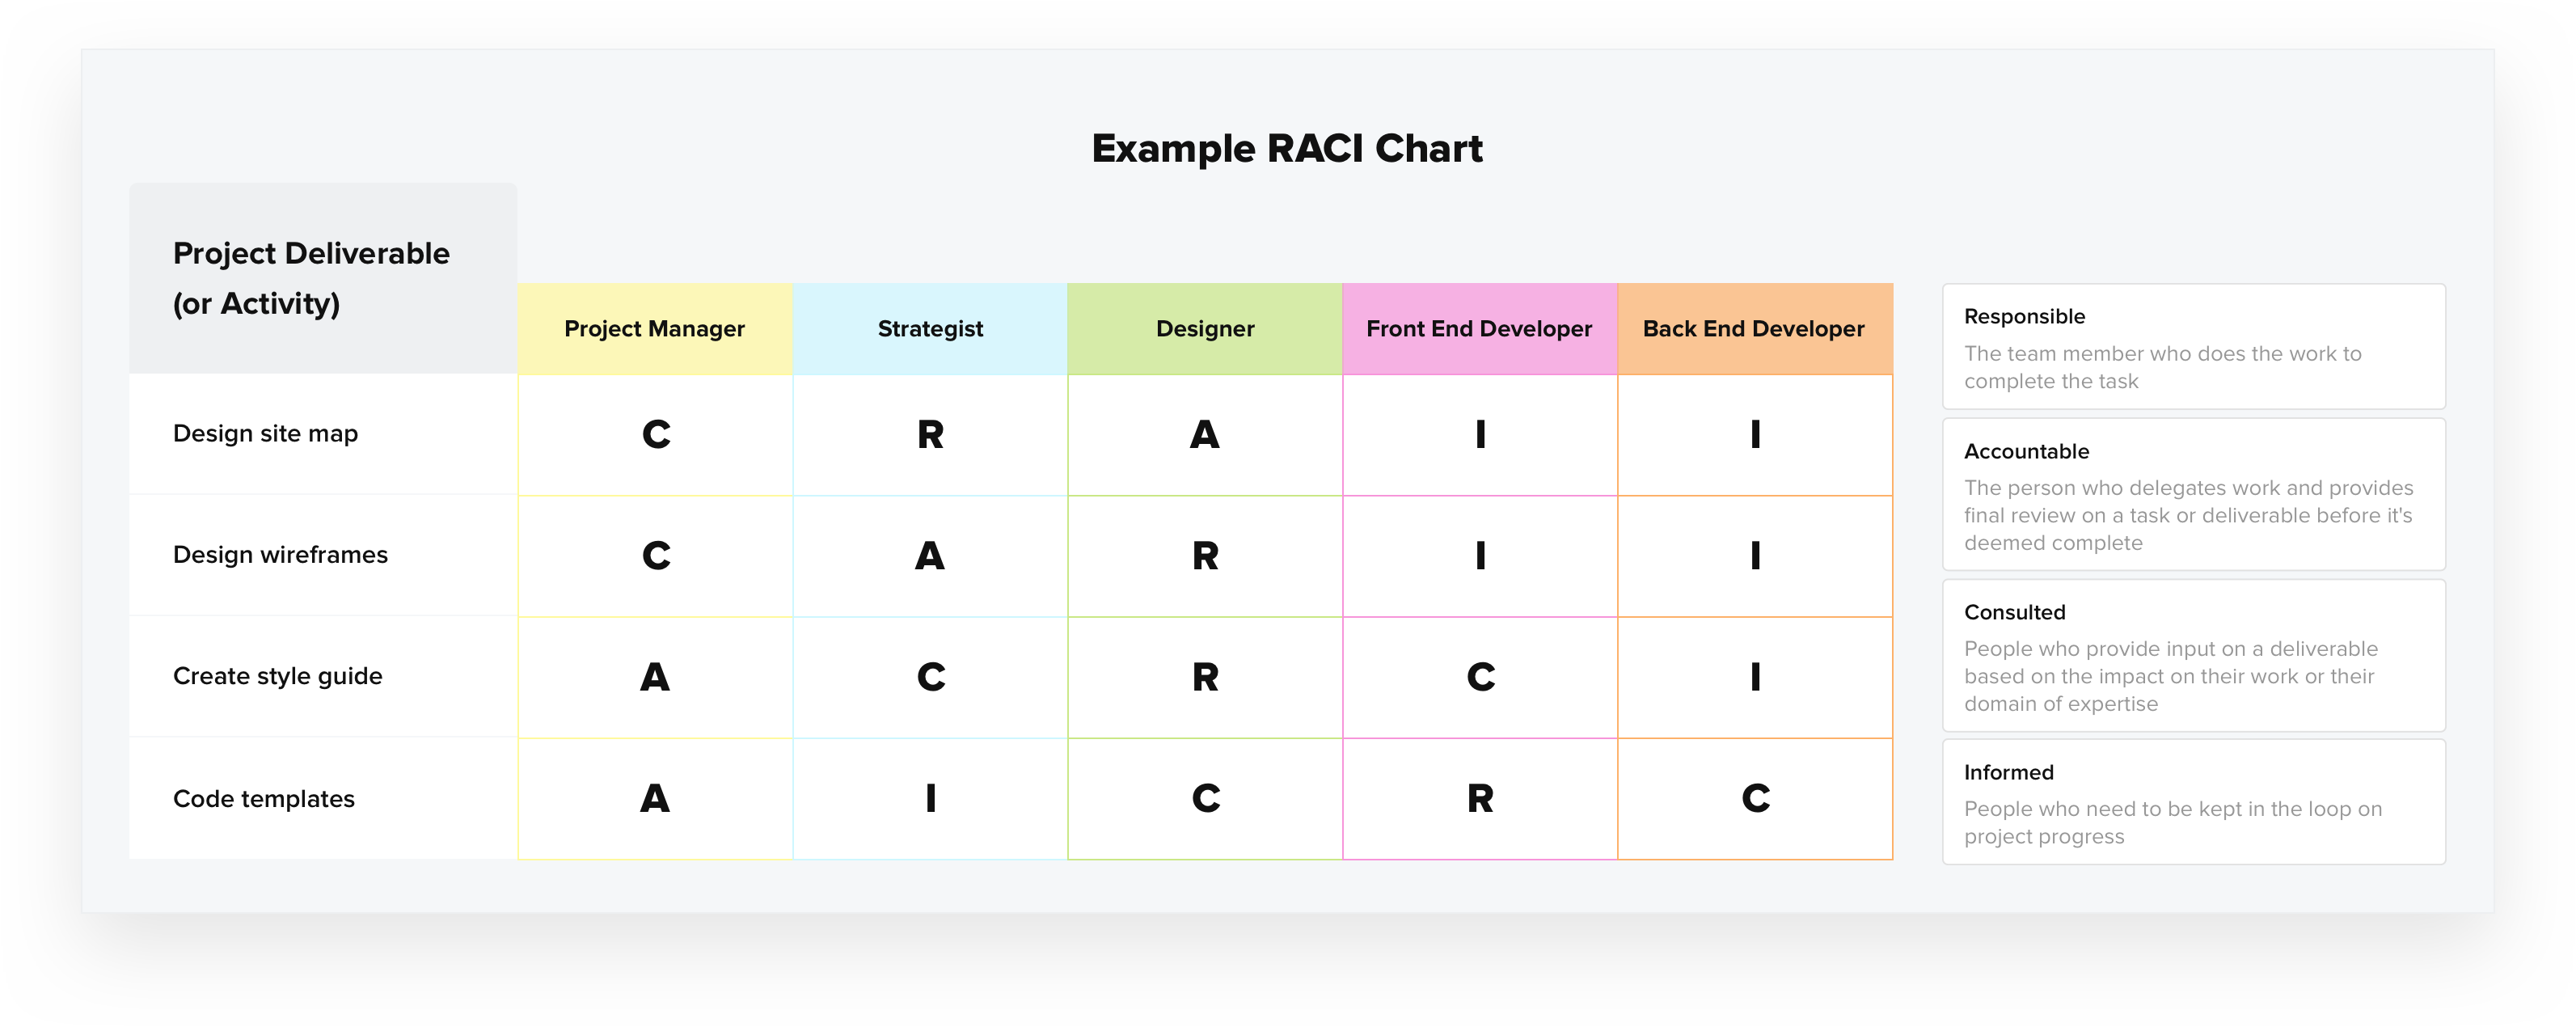 assign project roles and responsibilities with a RACI chart